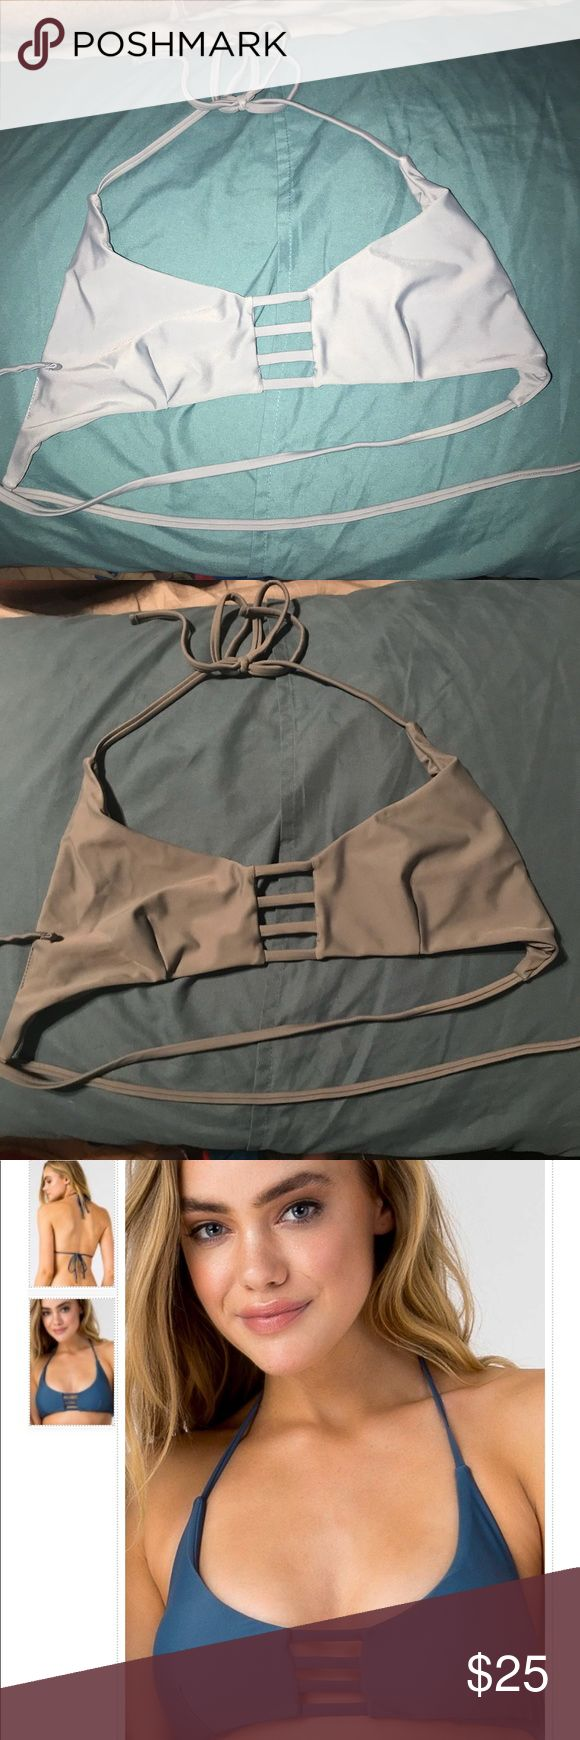 Gray Journey Bikini Top // Sheridyn Swim Journey bikini top from Sheridyn Swim. Size medium. Small cut on the side of the inside of the top where i took out the padding inserts. Great condition and super cute !! $50 on the website. Will bundle with the same top in navy. Sheridyn Swim Swim Bikinis